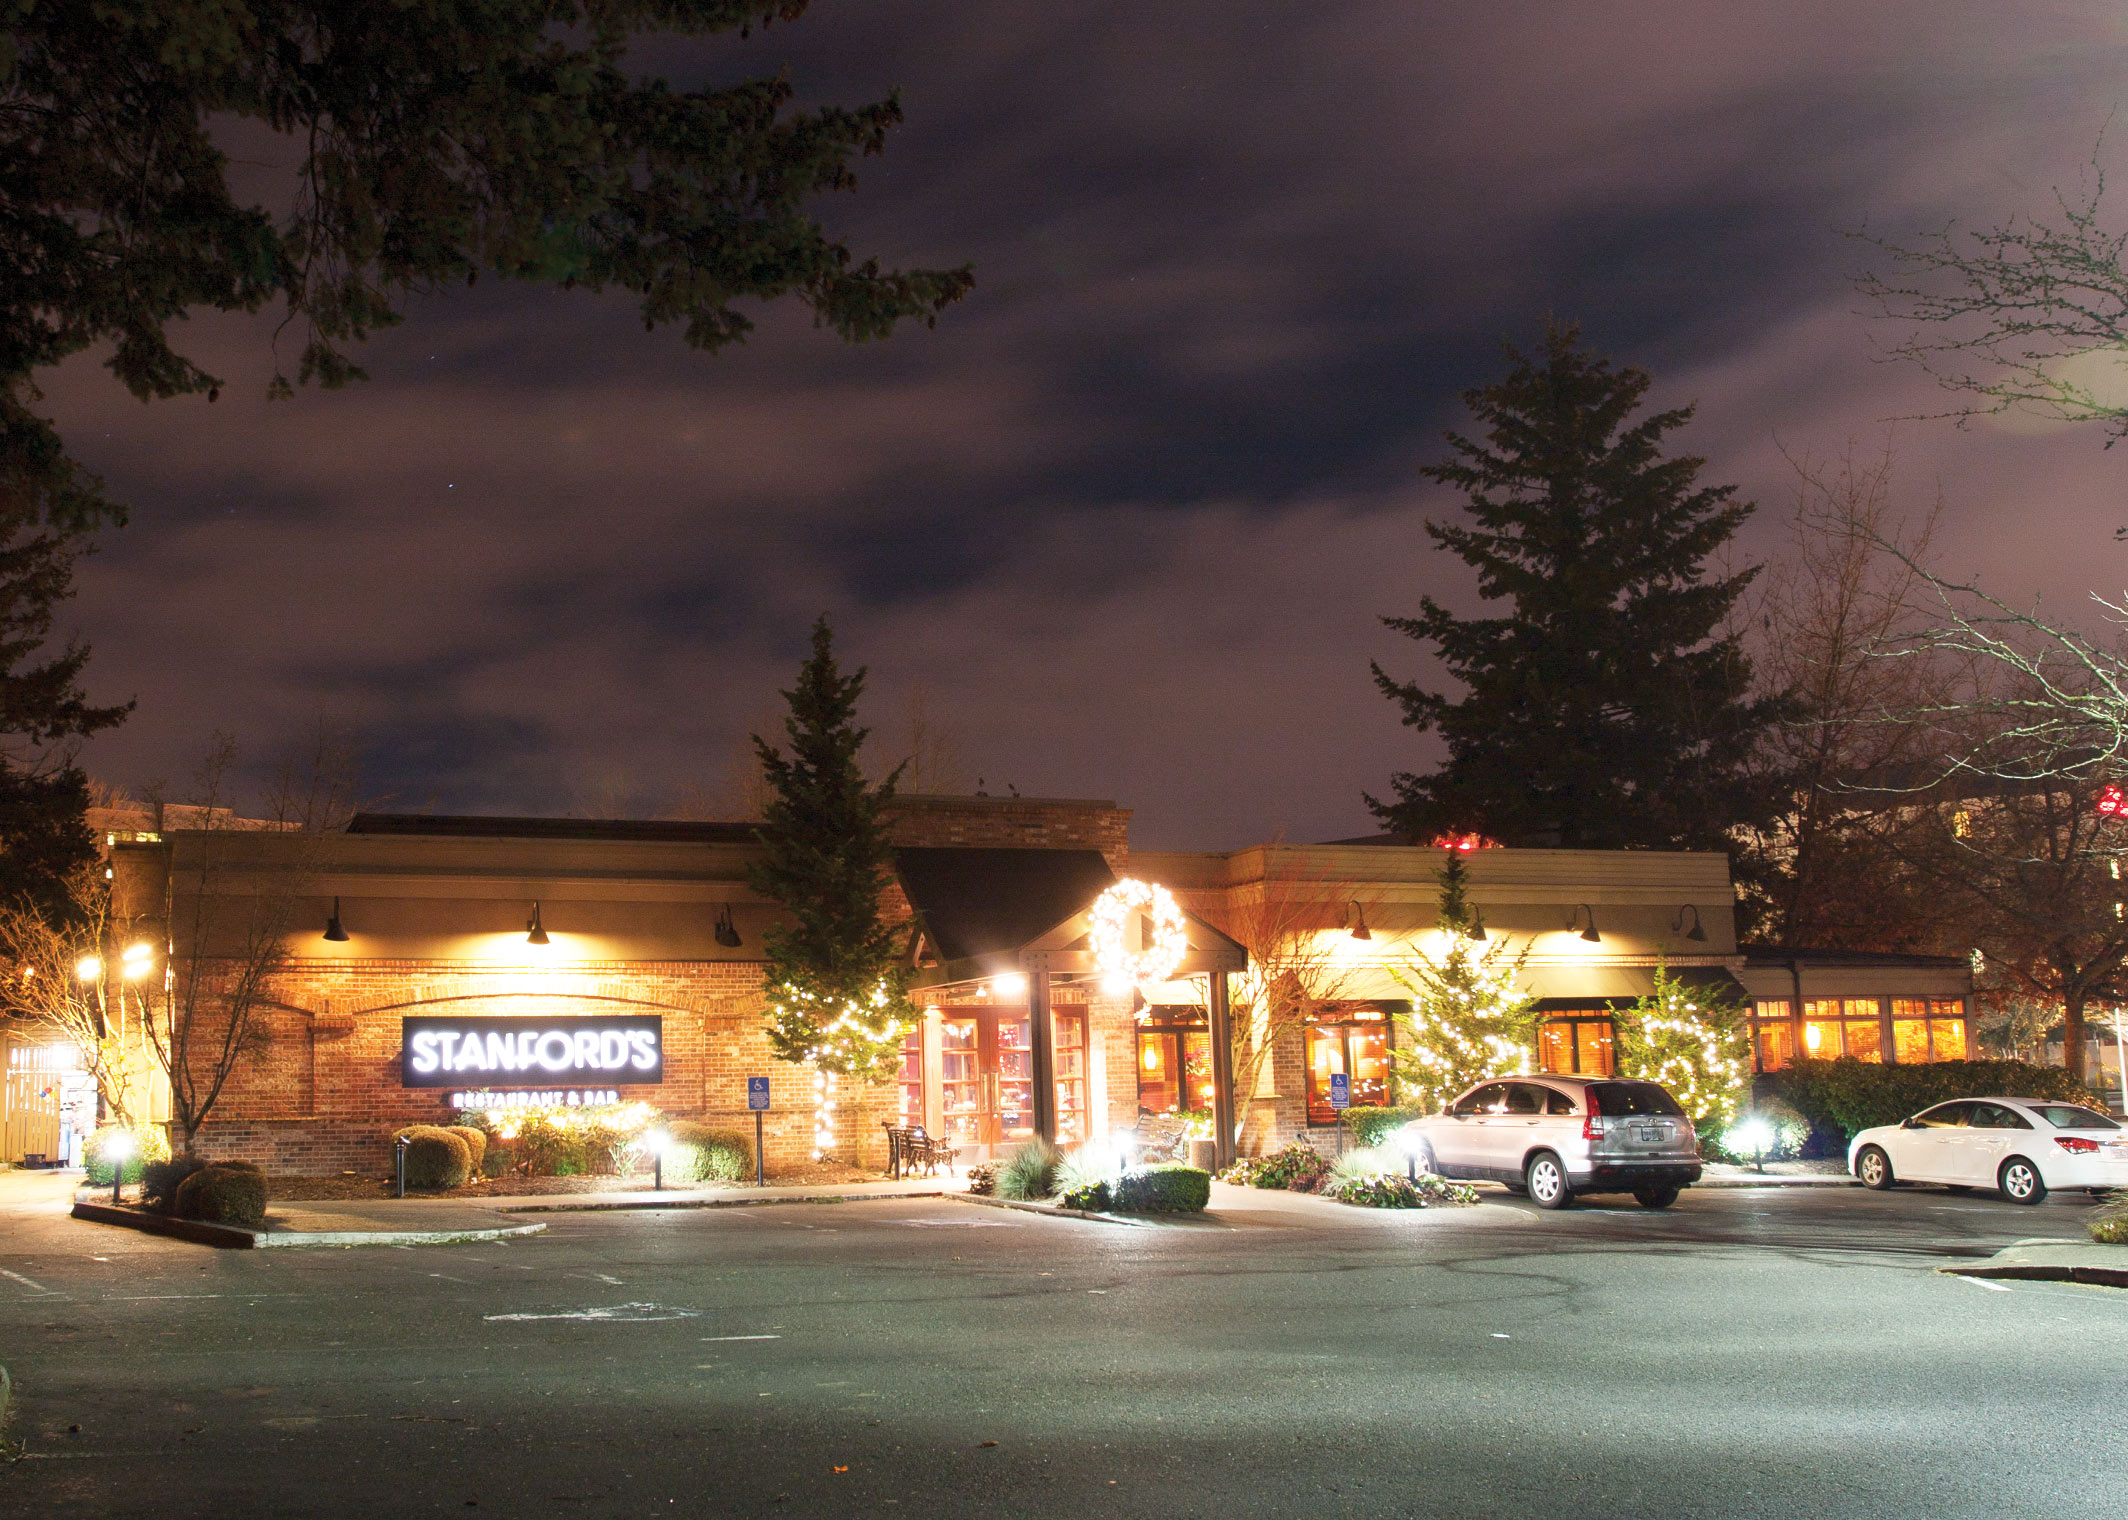 Stanford's restaurant store front at night